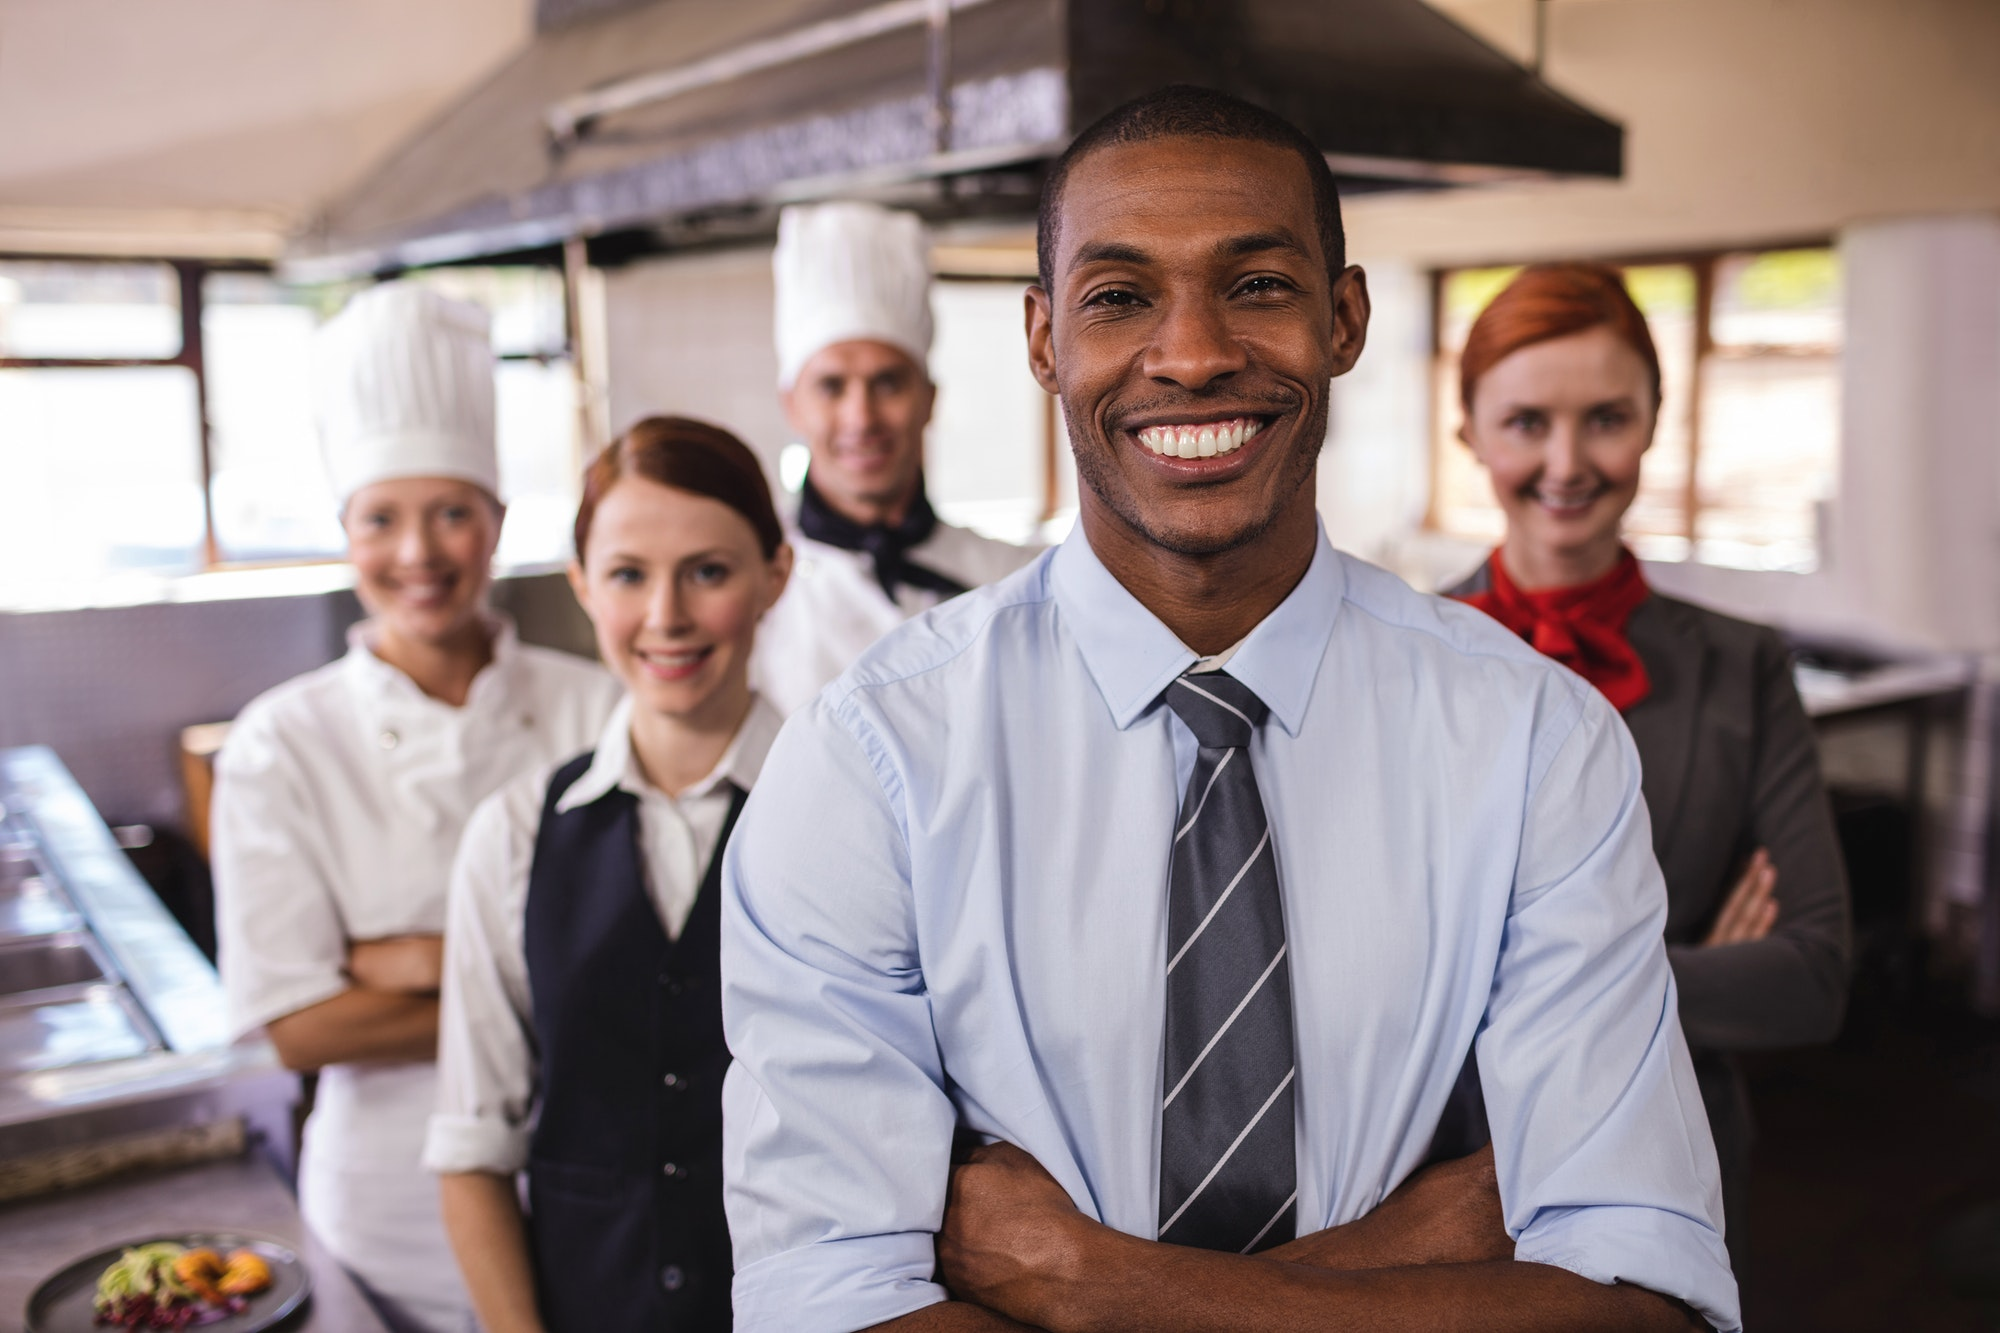 Group of hotel staffs standing with arms crossed in kitchen